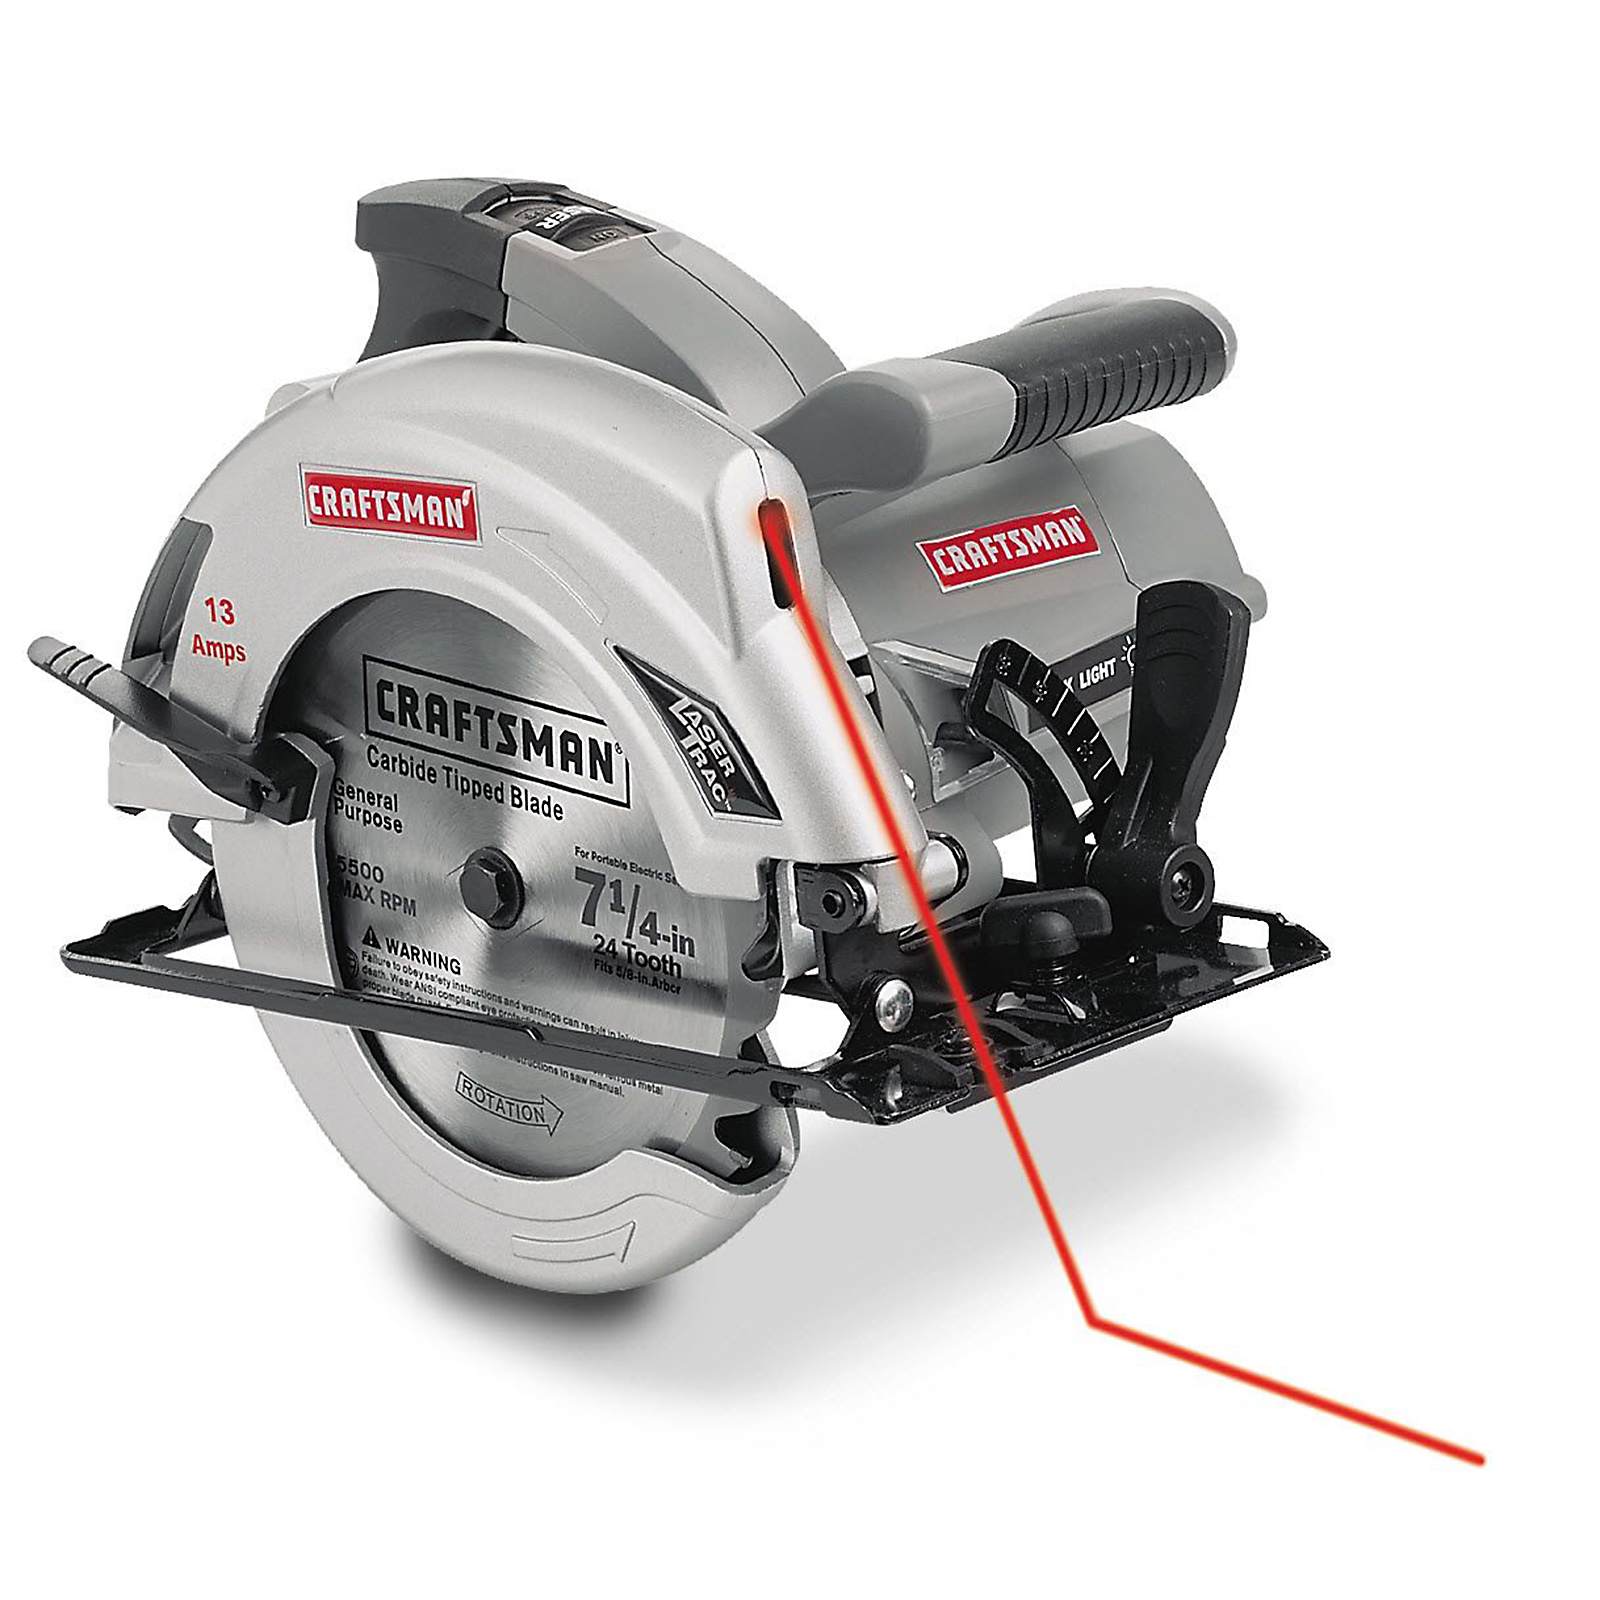 "Craftsman 10871  13 amp Corded 7-1/4"" Circular Saw 10871"